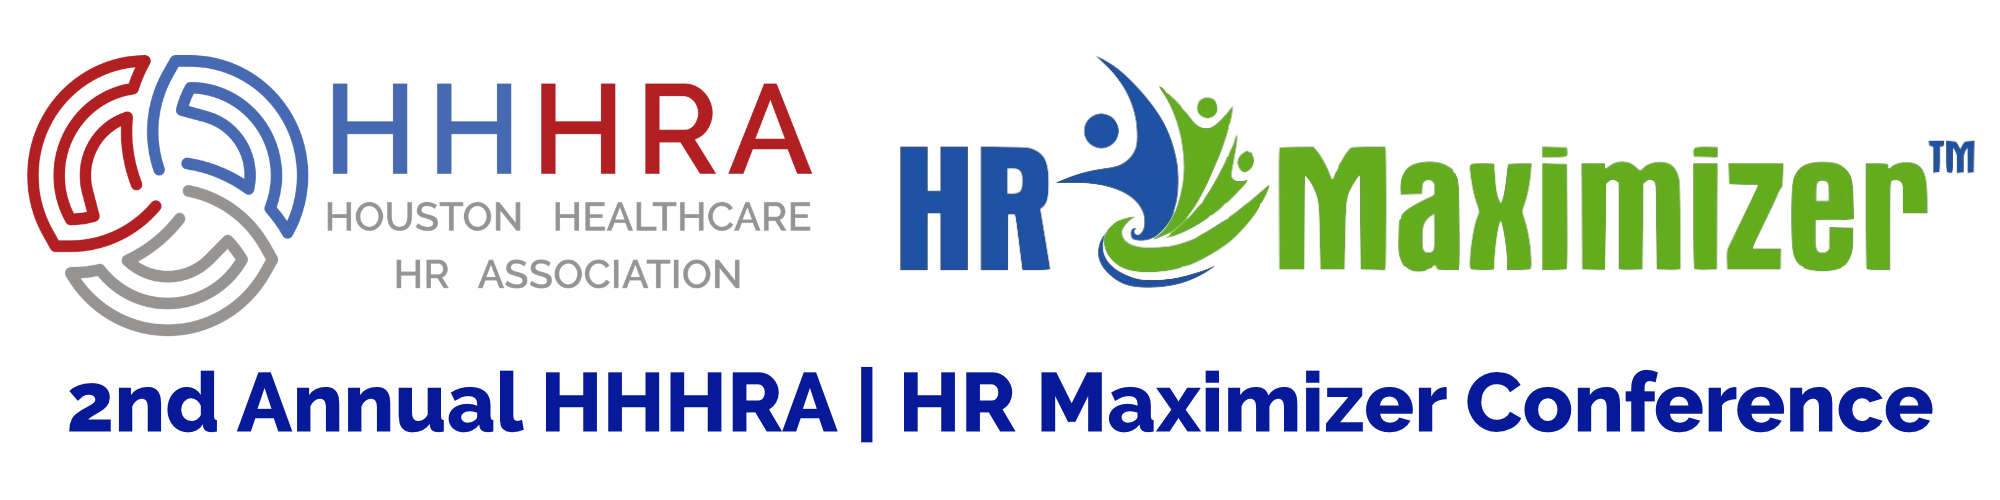 2nd Annual HHHRA | HR Maximizer Conference